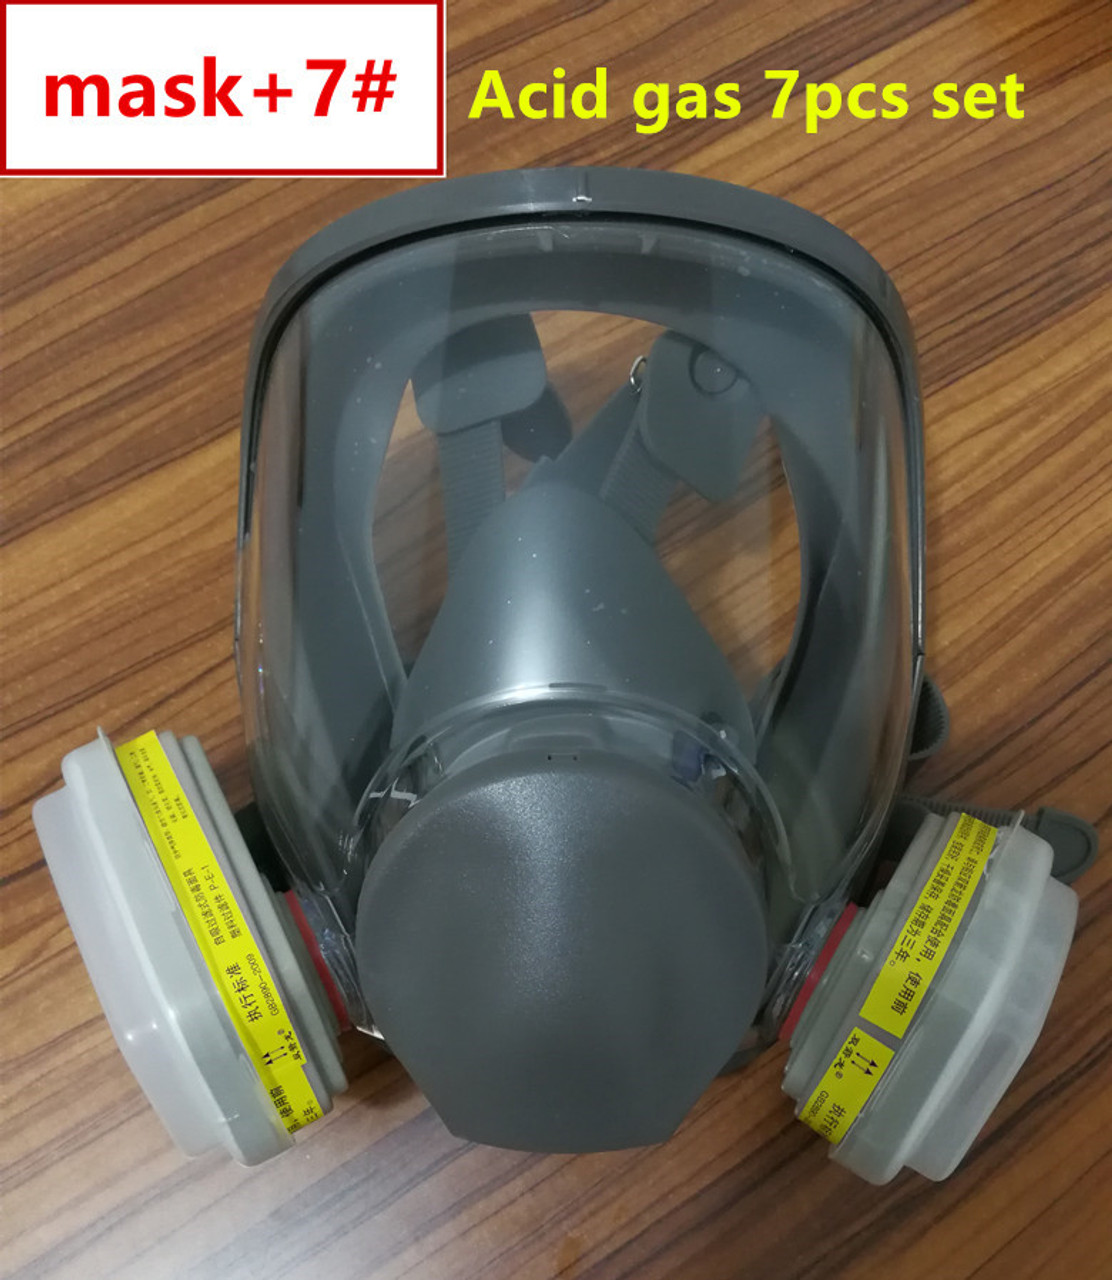 Party Masks 7 Piece Full Face Mask For 6800 Gas Mask Full Face Facepiece Respirator For Painting Spraying Free Shipping Festive & Party Supplies